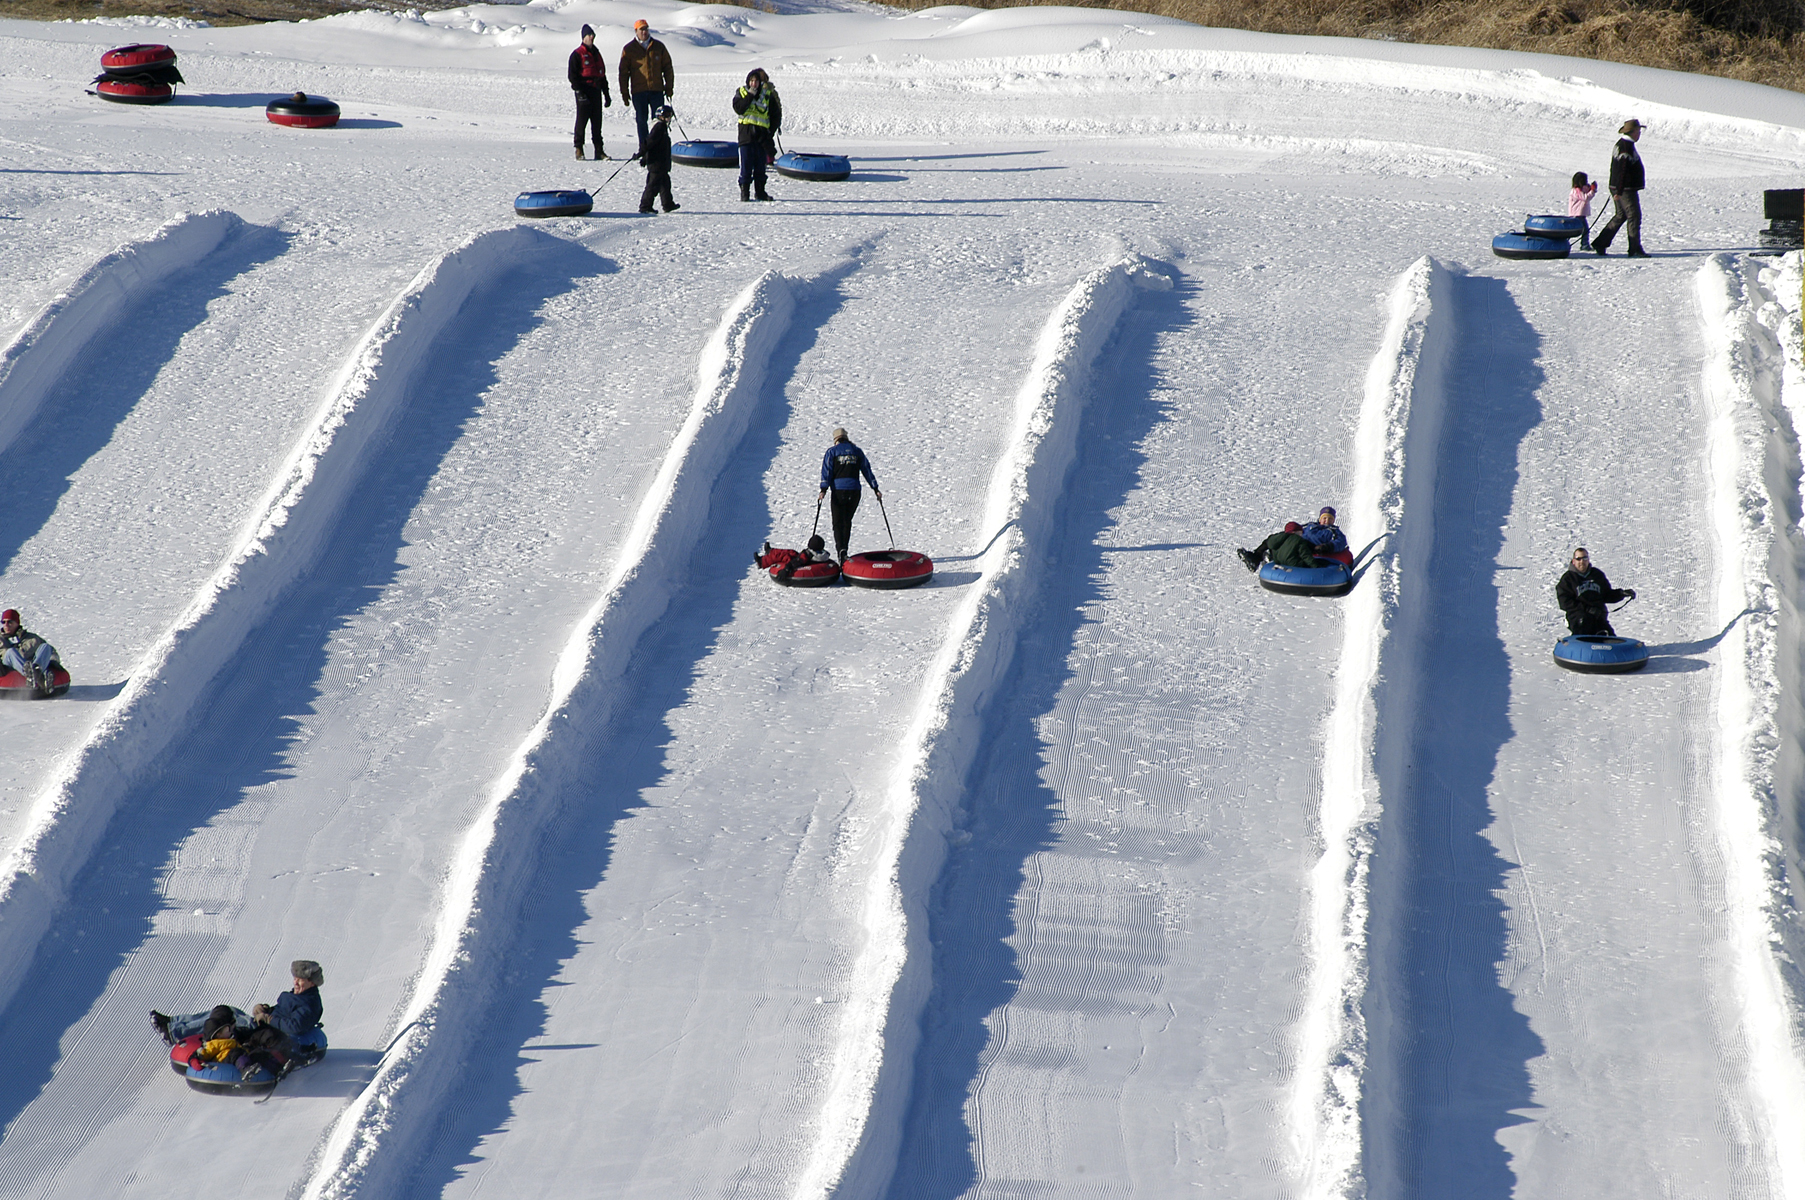 people tubing down large hill